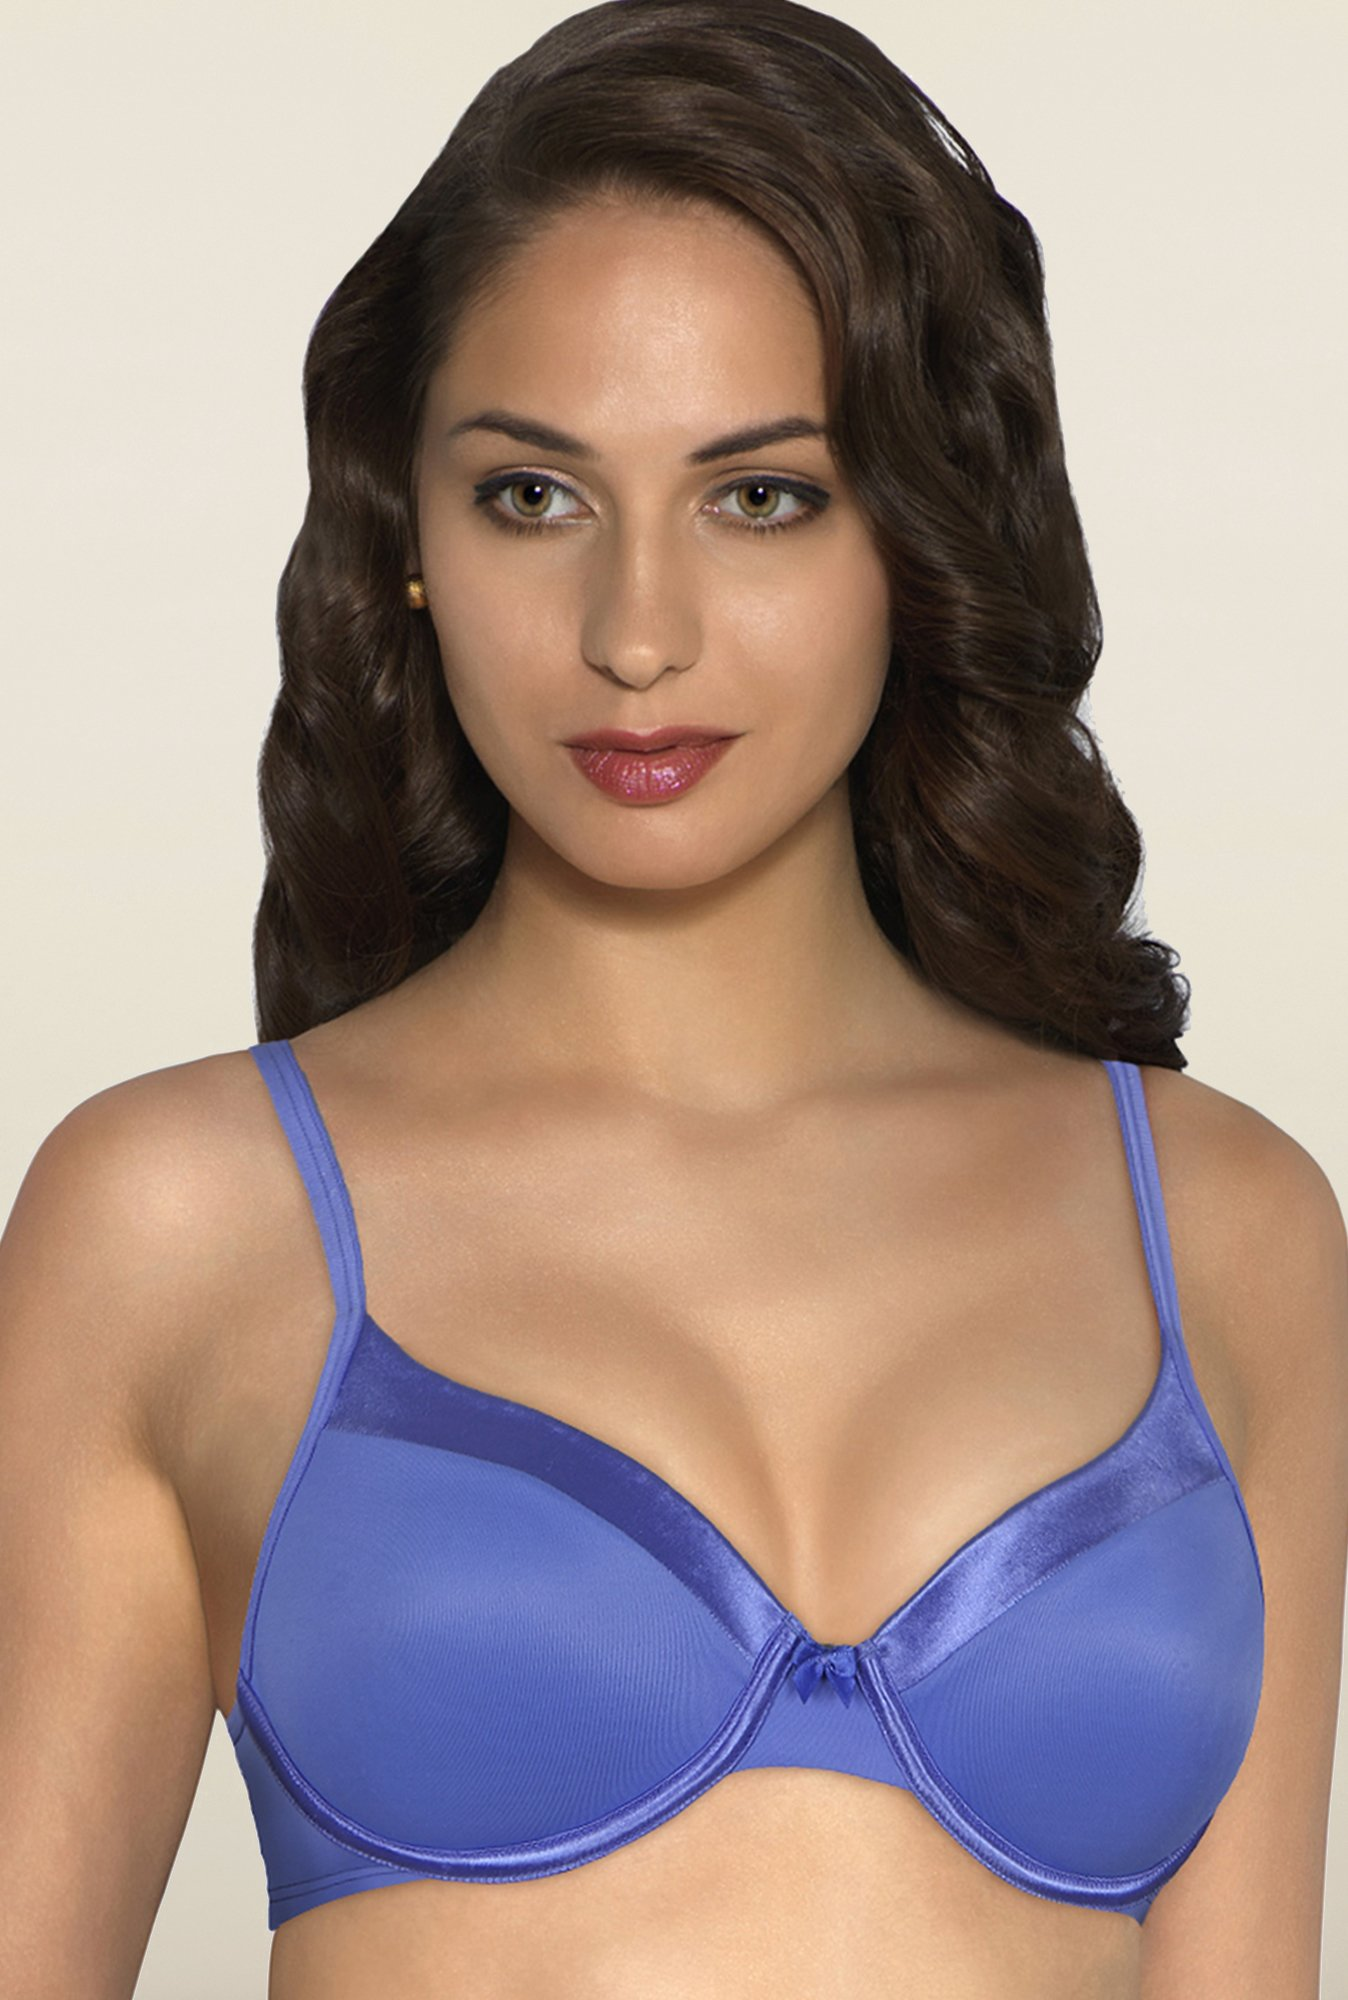 Amante Blue Underwired Padded Bra